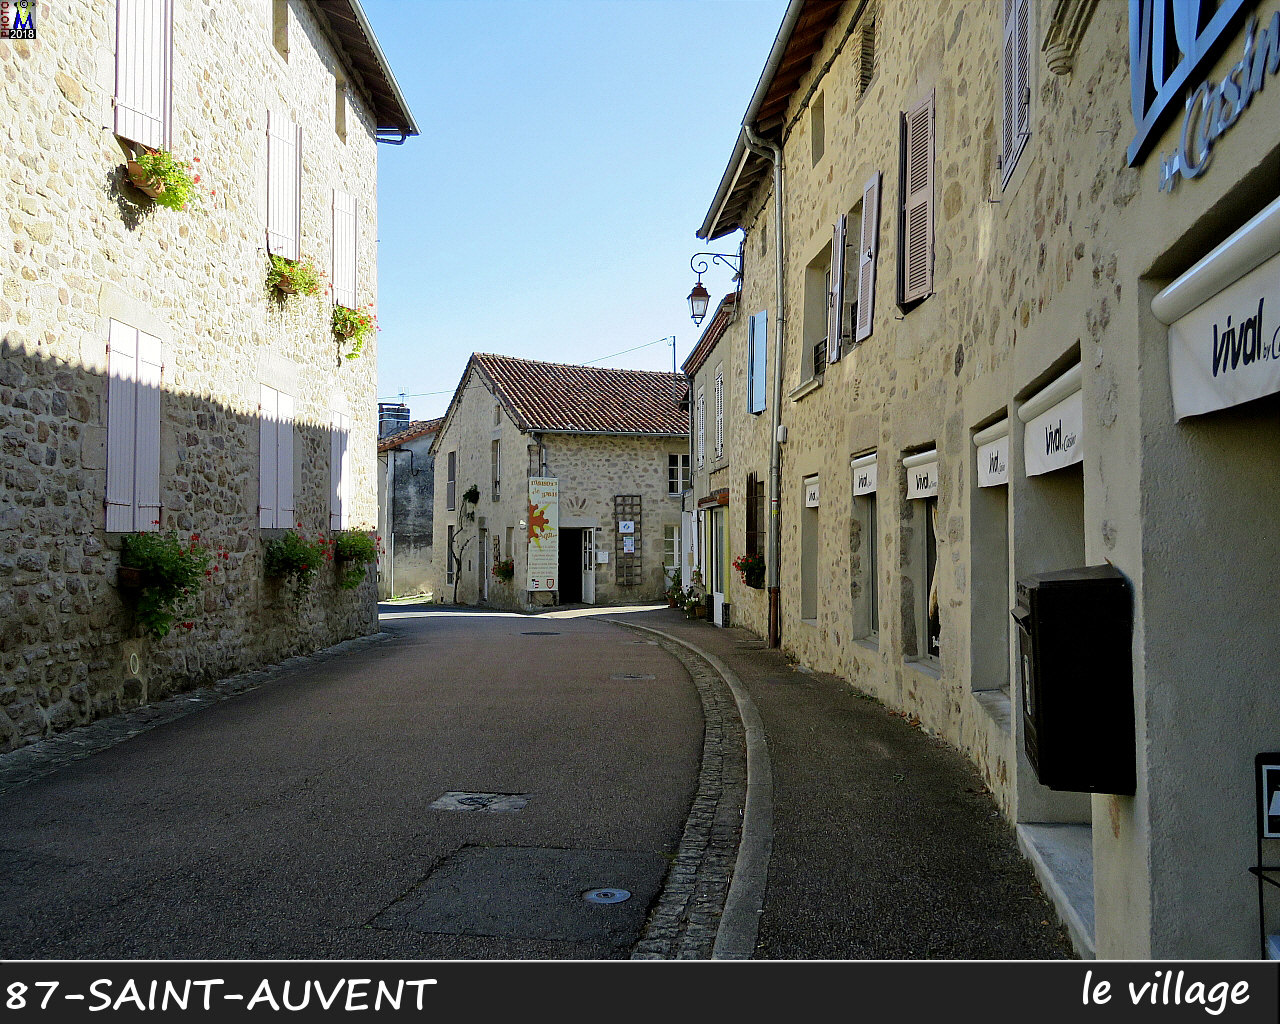 87St-AUVENT_village_1002.jpg